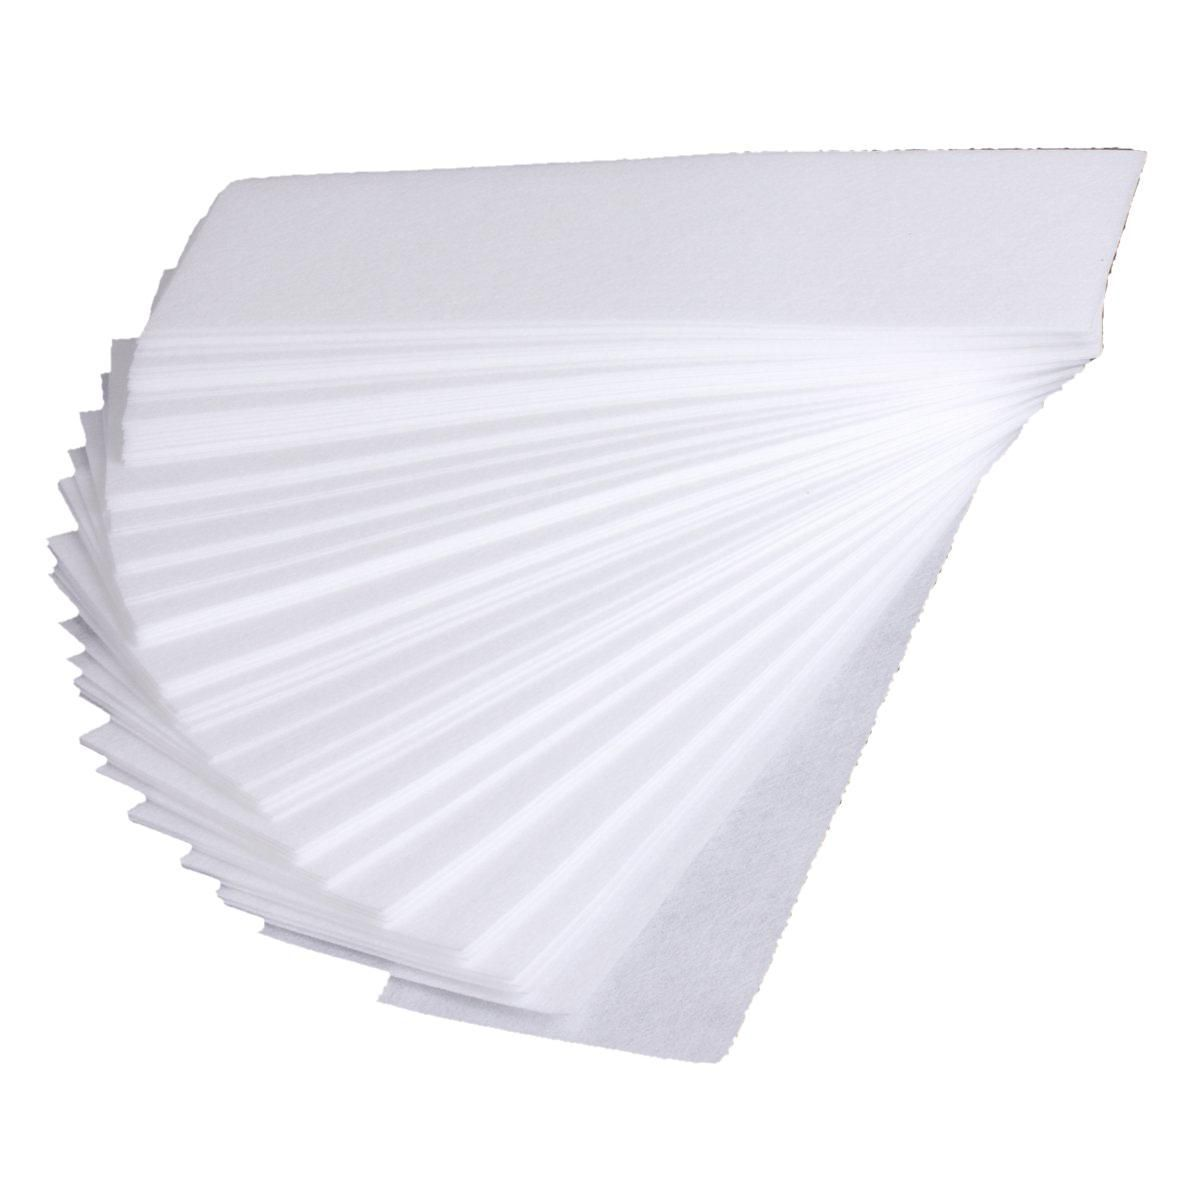 Leg Hair Removal Wax Strip Paper Depilatory White Nonwoven